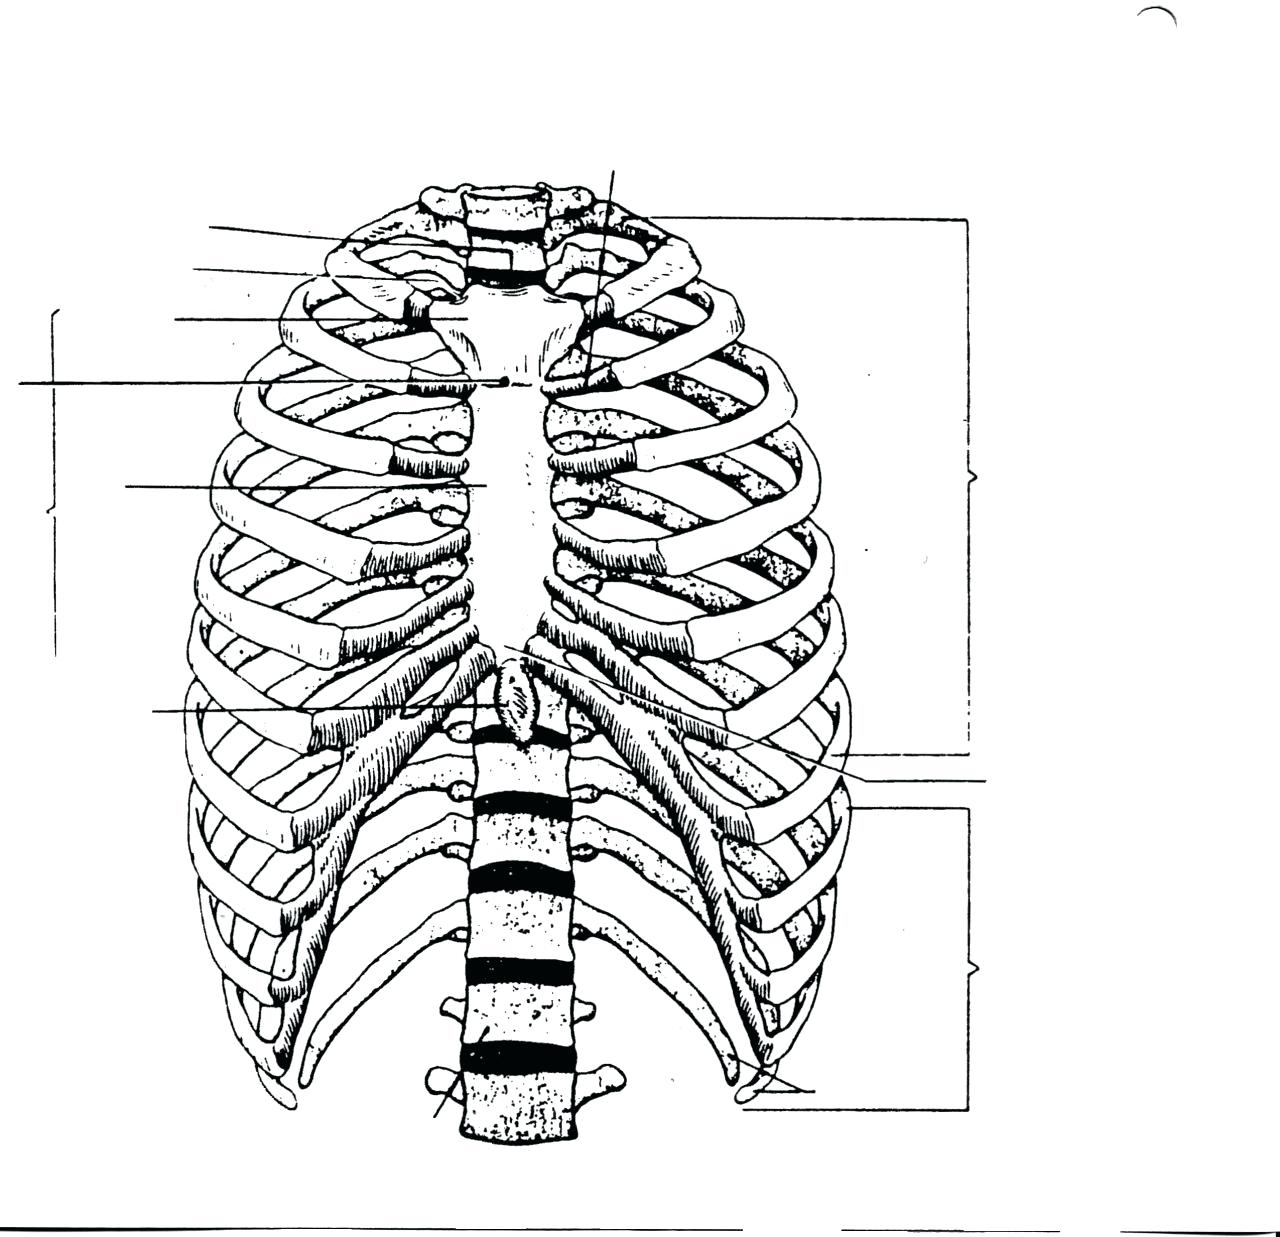 1280x1237 Diagram Rib Cage Diagram Labeled Internal Organs Human. Rib Cage